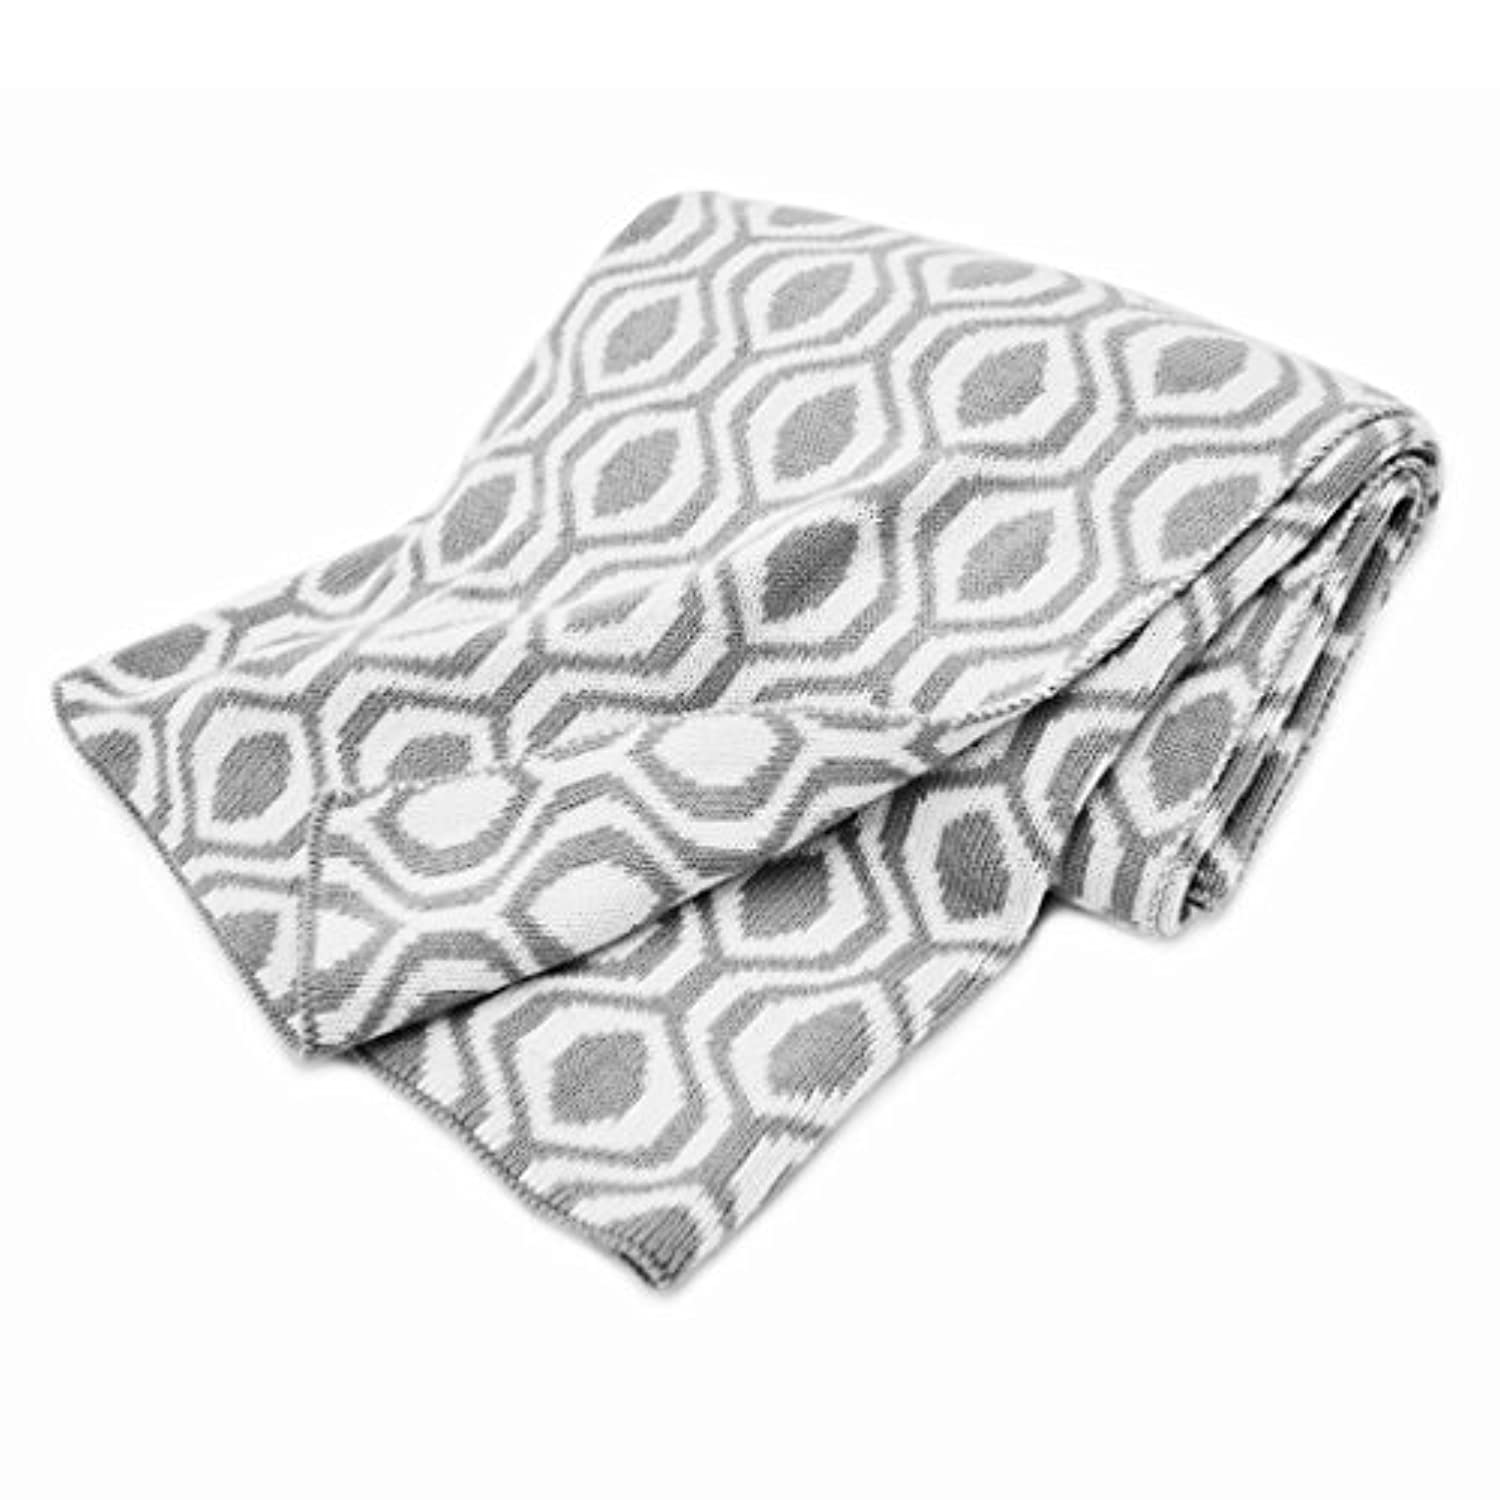 American Baby Company 100% Cotton Sweater Knit Blanket, Gray Ogee by American Baby Company